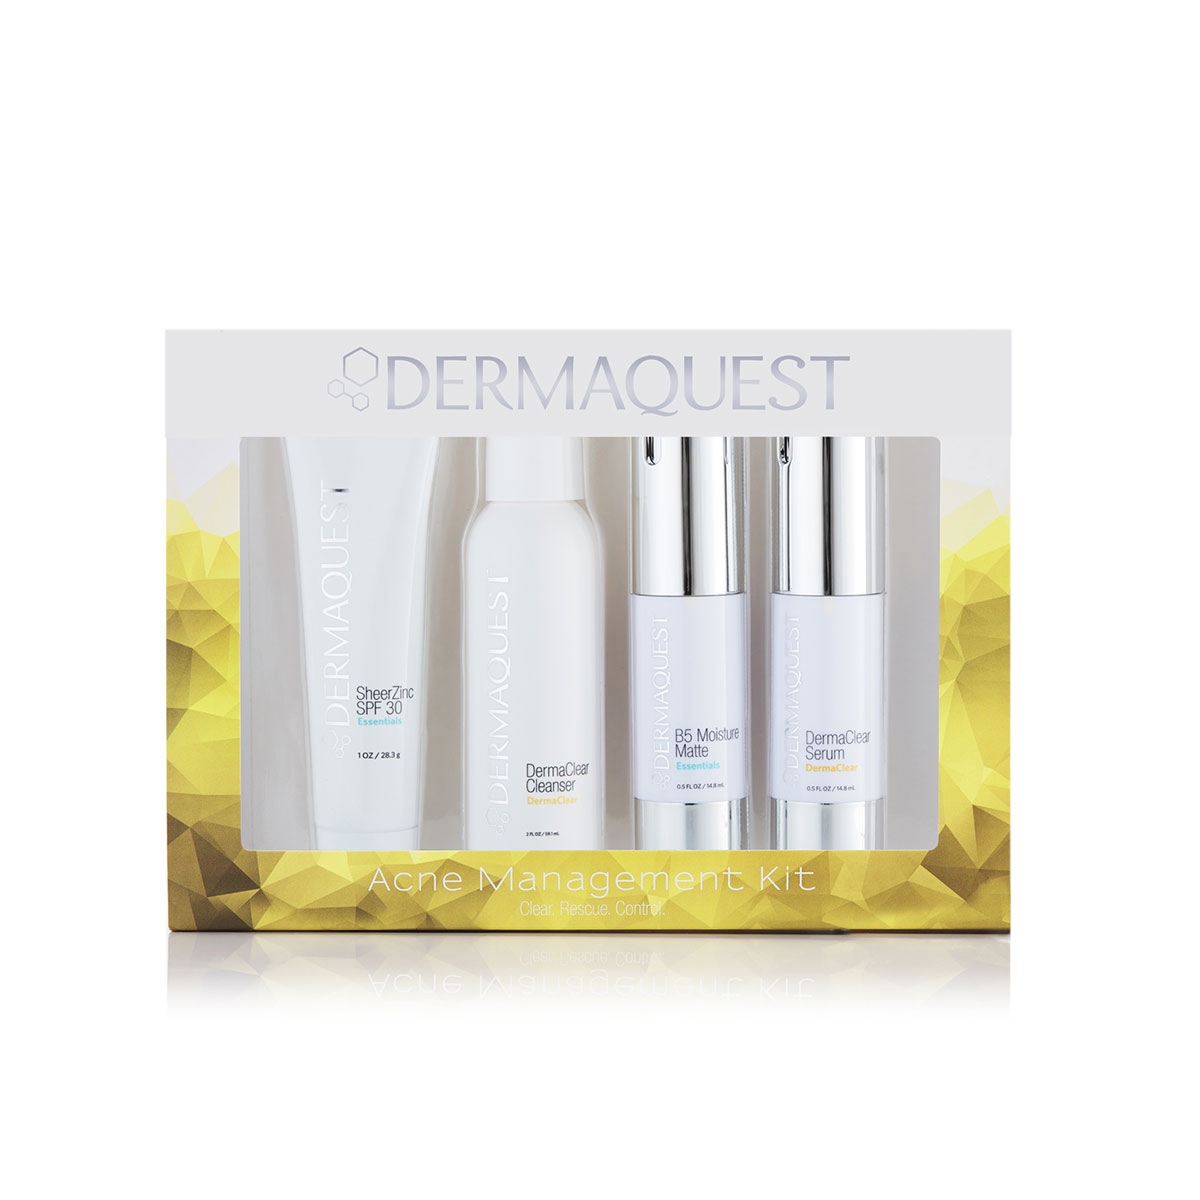 Acne-Management-Kit